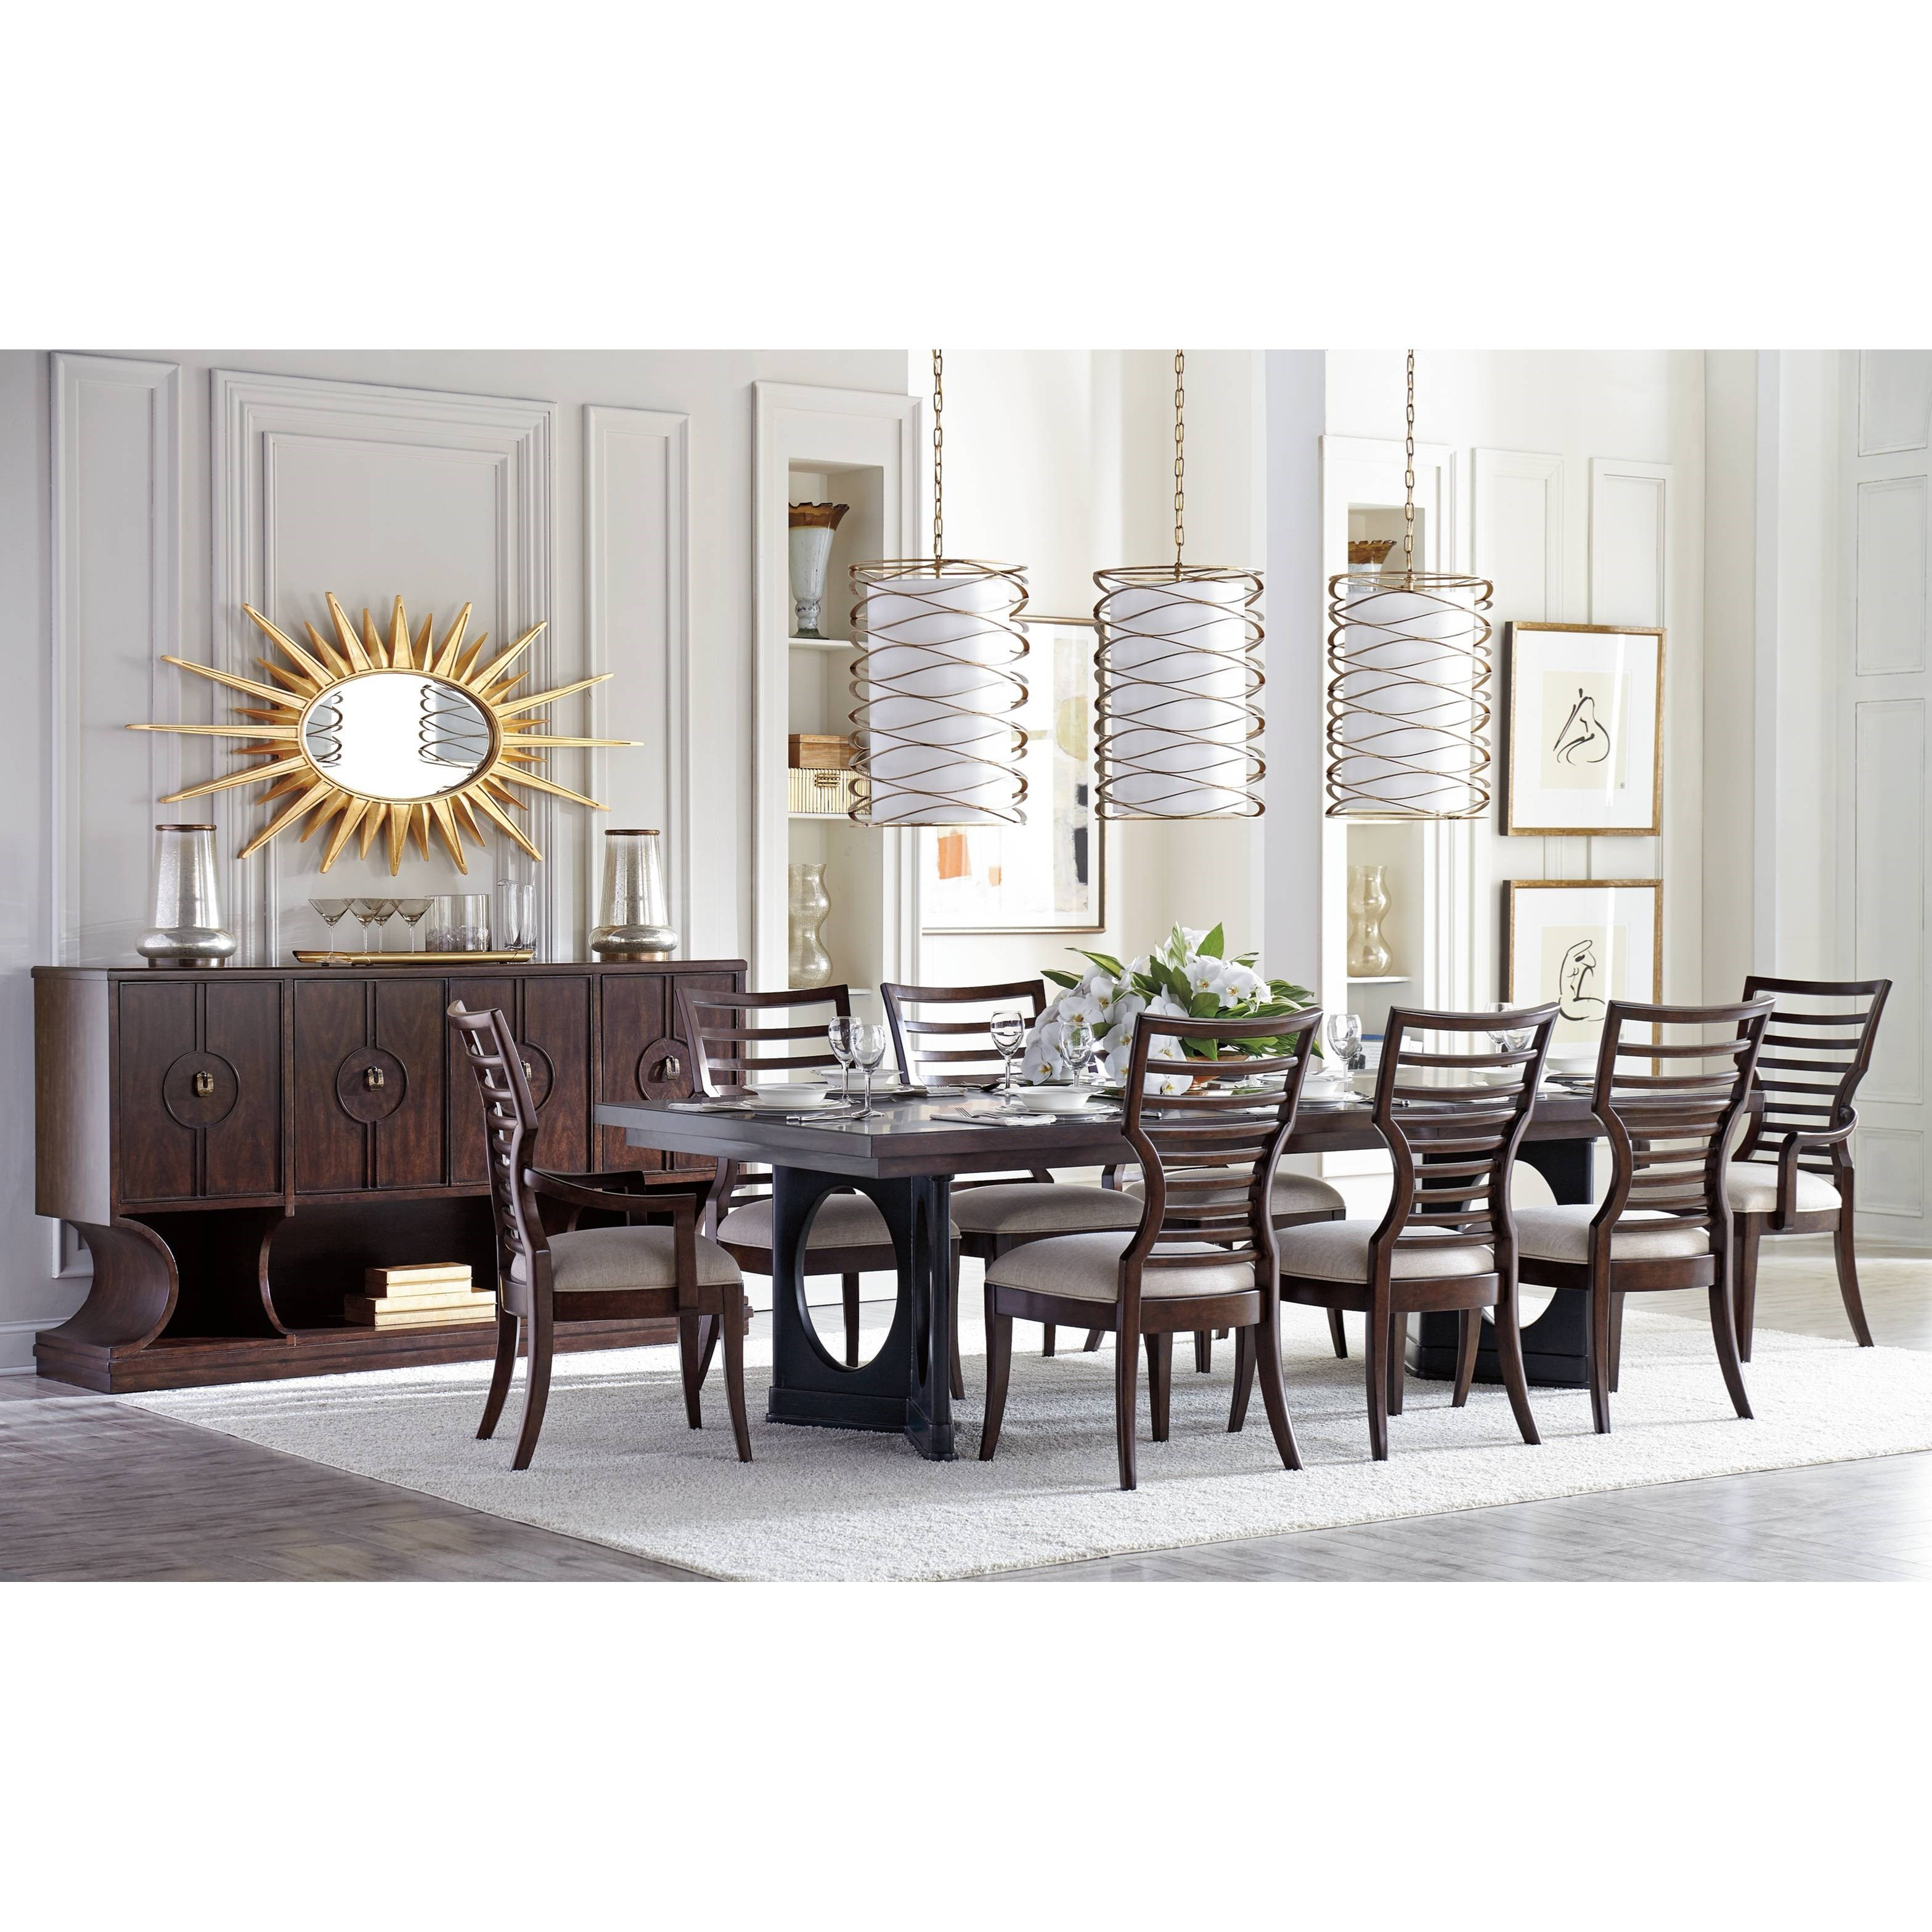 Stanley furniture virage formal dining room group becker for Formal dining room furniture